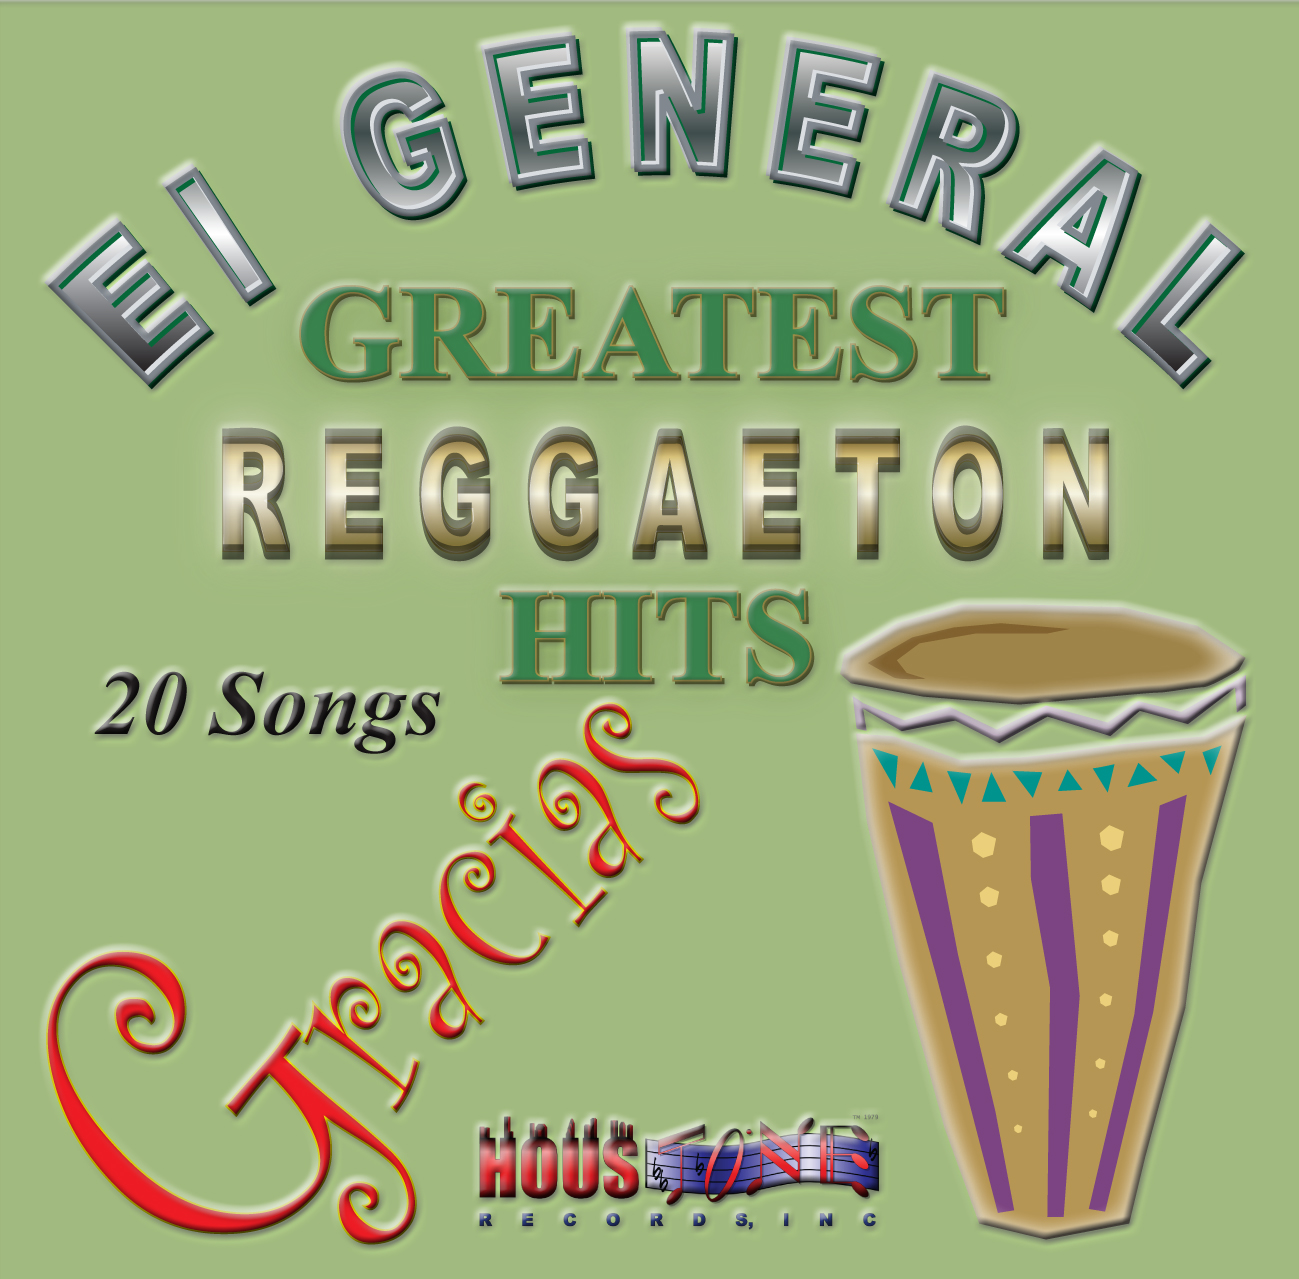 Gracias, EL General Greatest Reggaeton Hits (Re-Mastered)